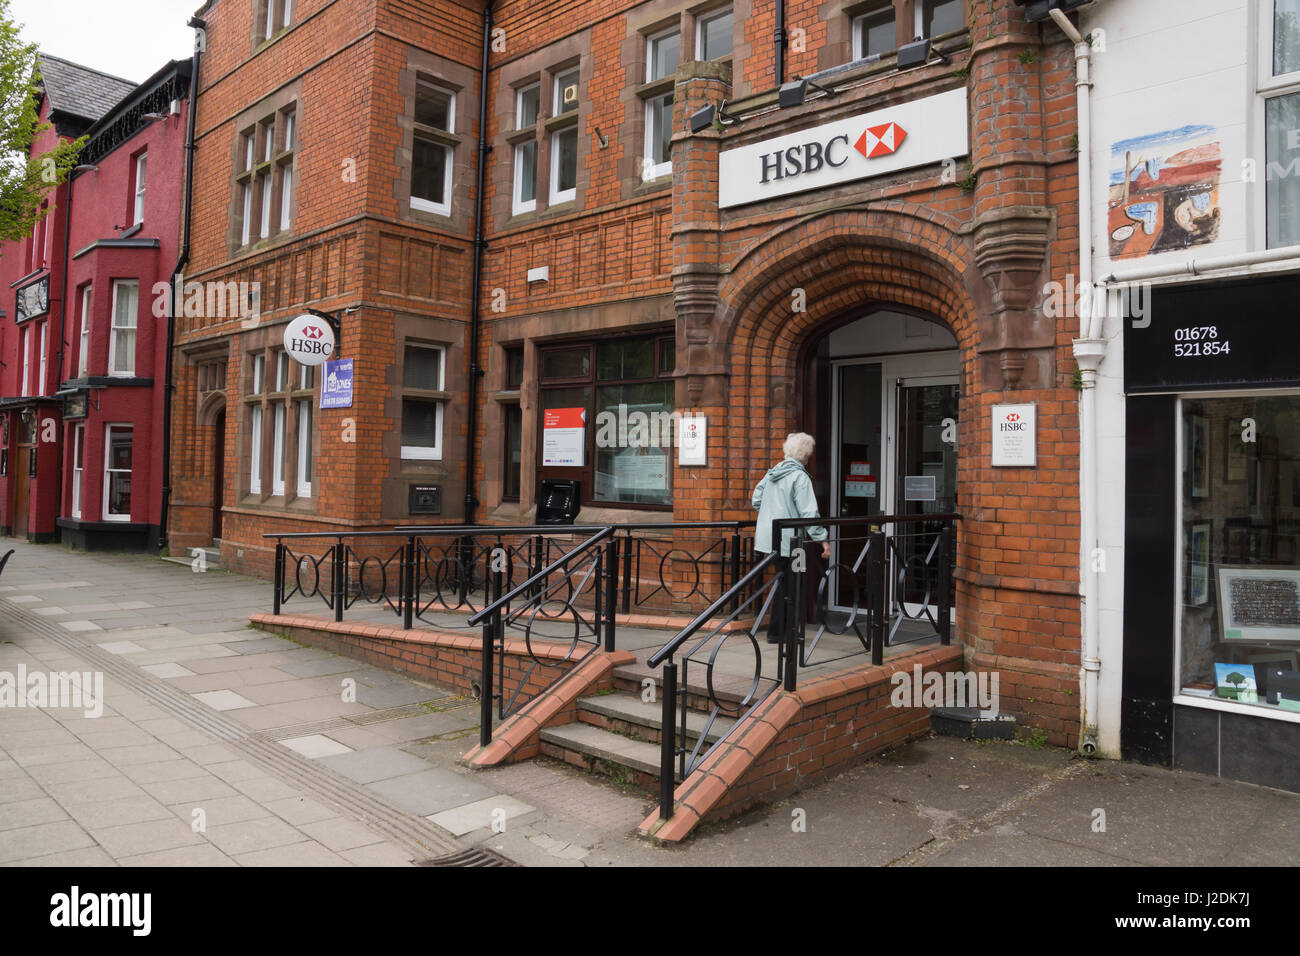 HSBC branch in Bala North Wales one of the few rural bank branches still open in the whole of North Wales after - Stock Image